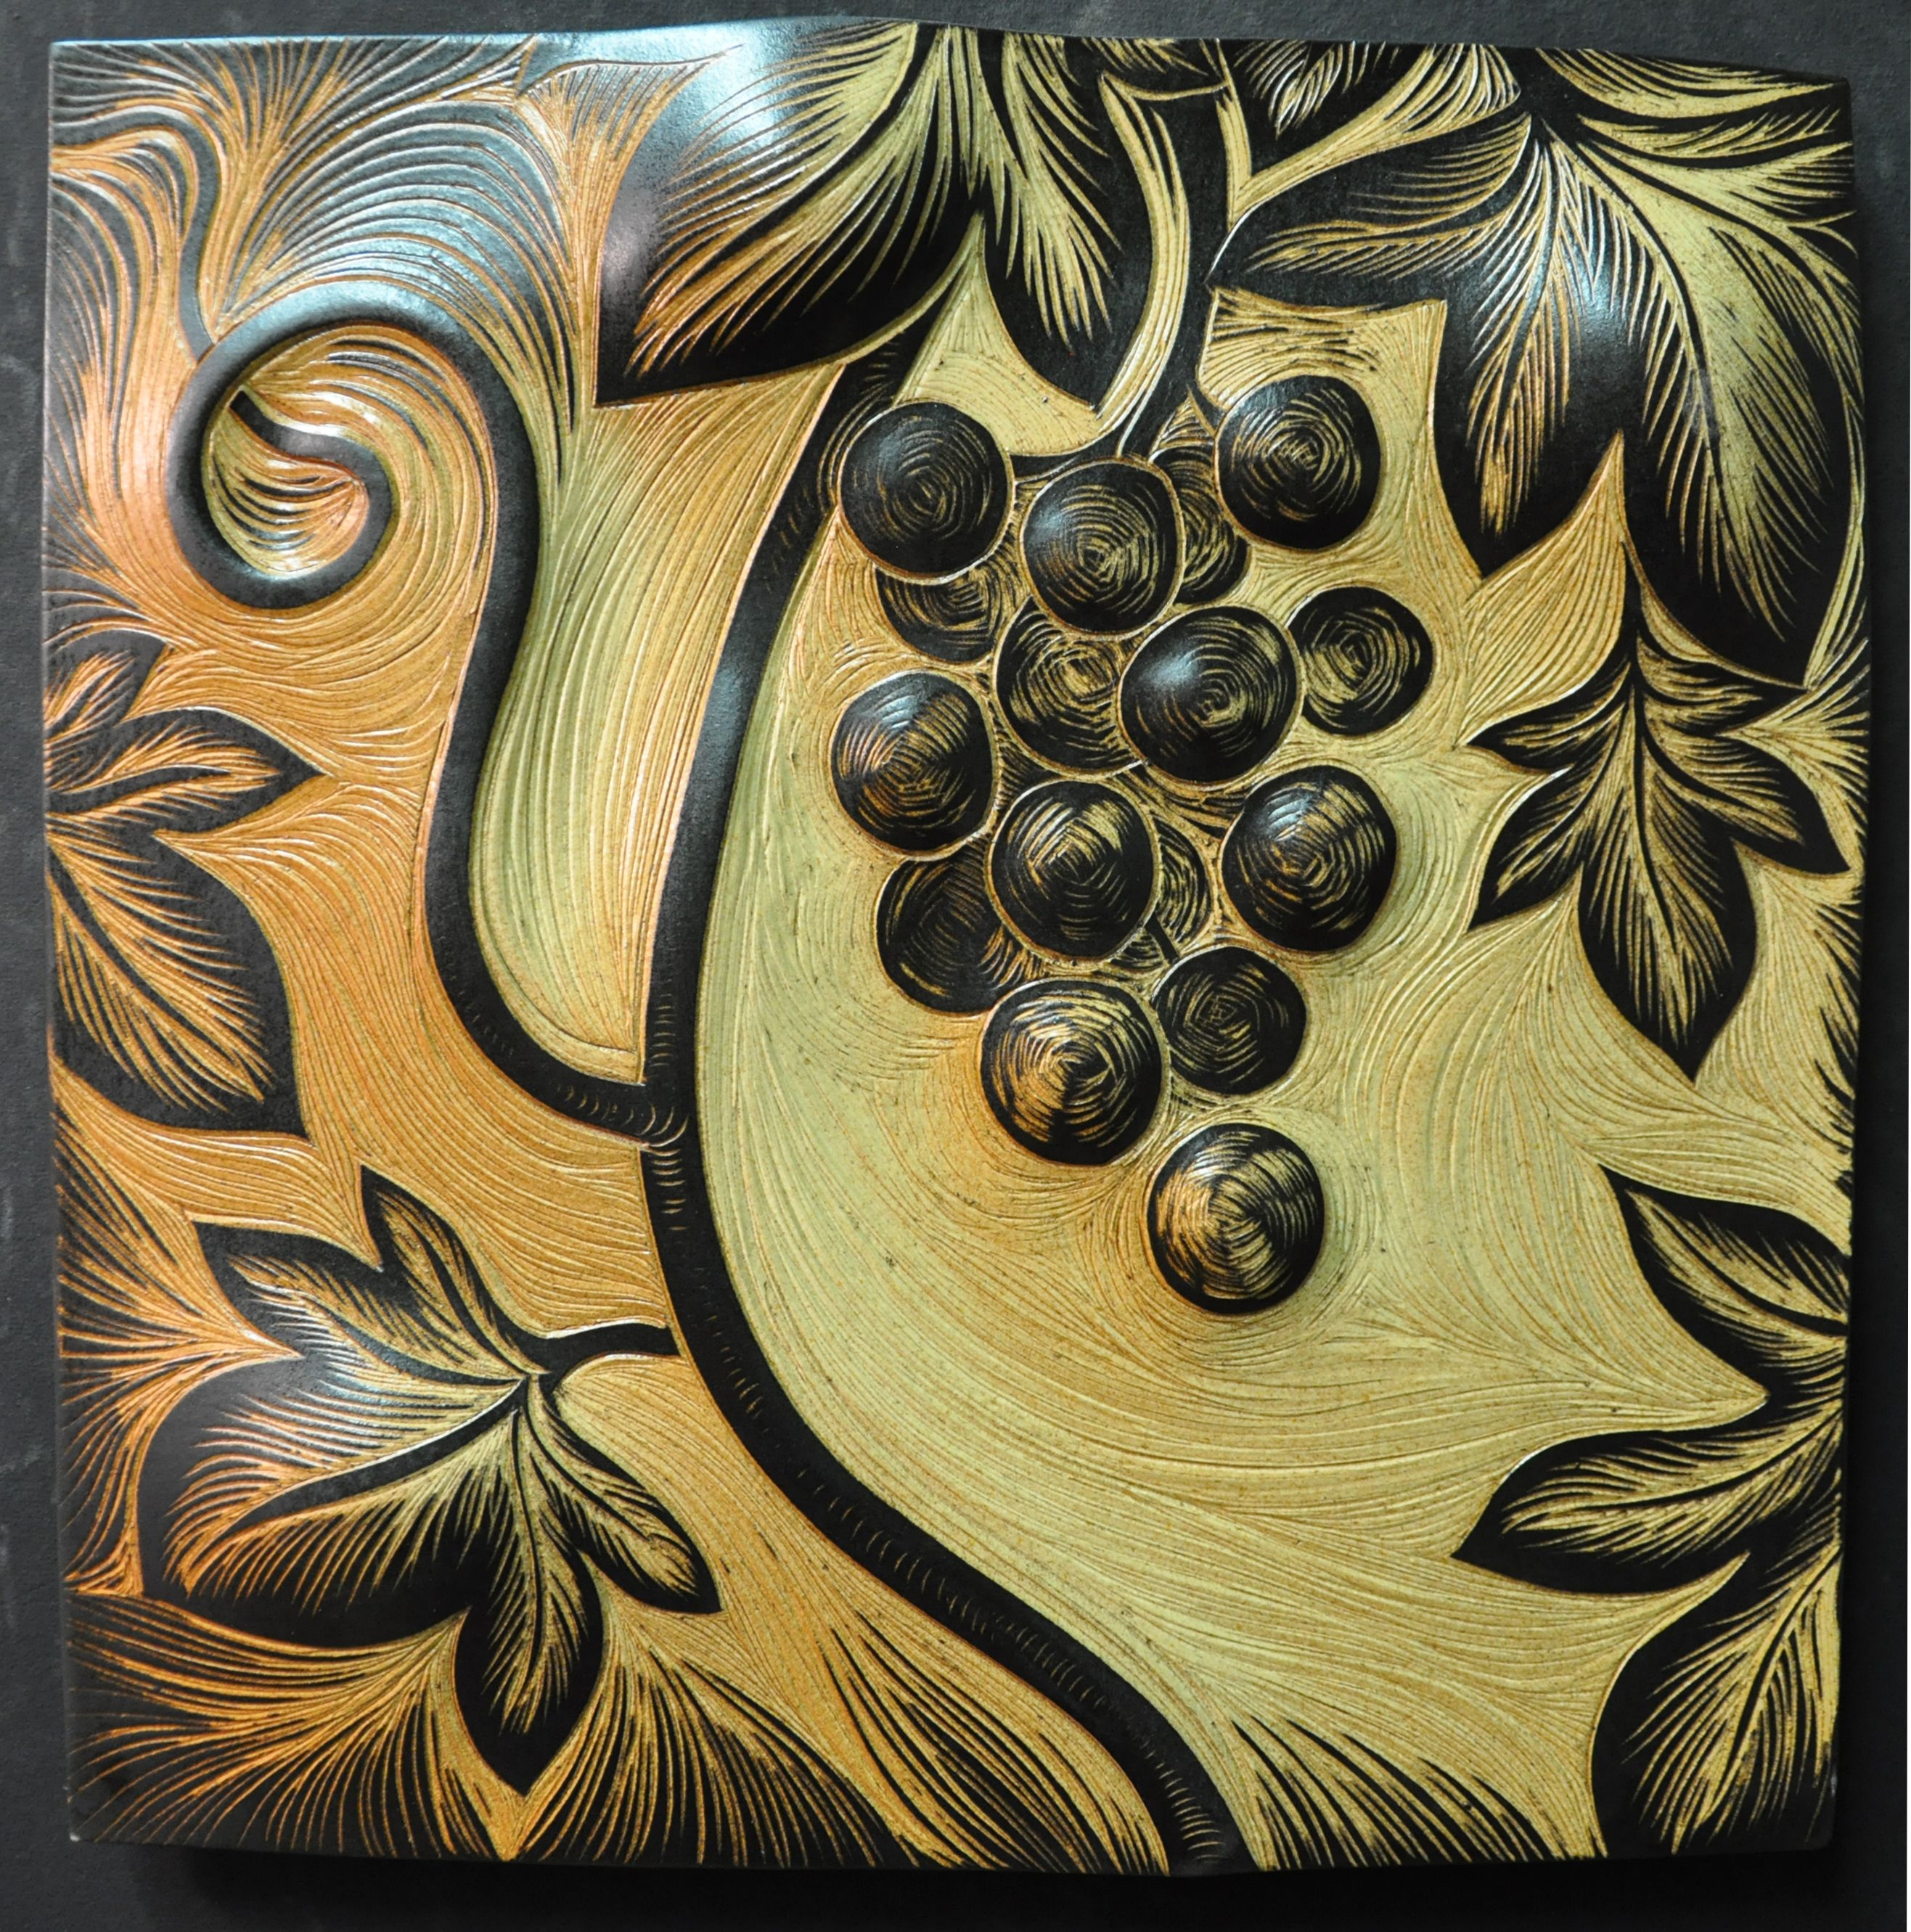 Detail of handmade sgraffito carved ceramic wall tile by natalie detail of handmade sgraffito carved ceramic wall tile by natalie blake dailygadgetfo Image collections